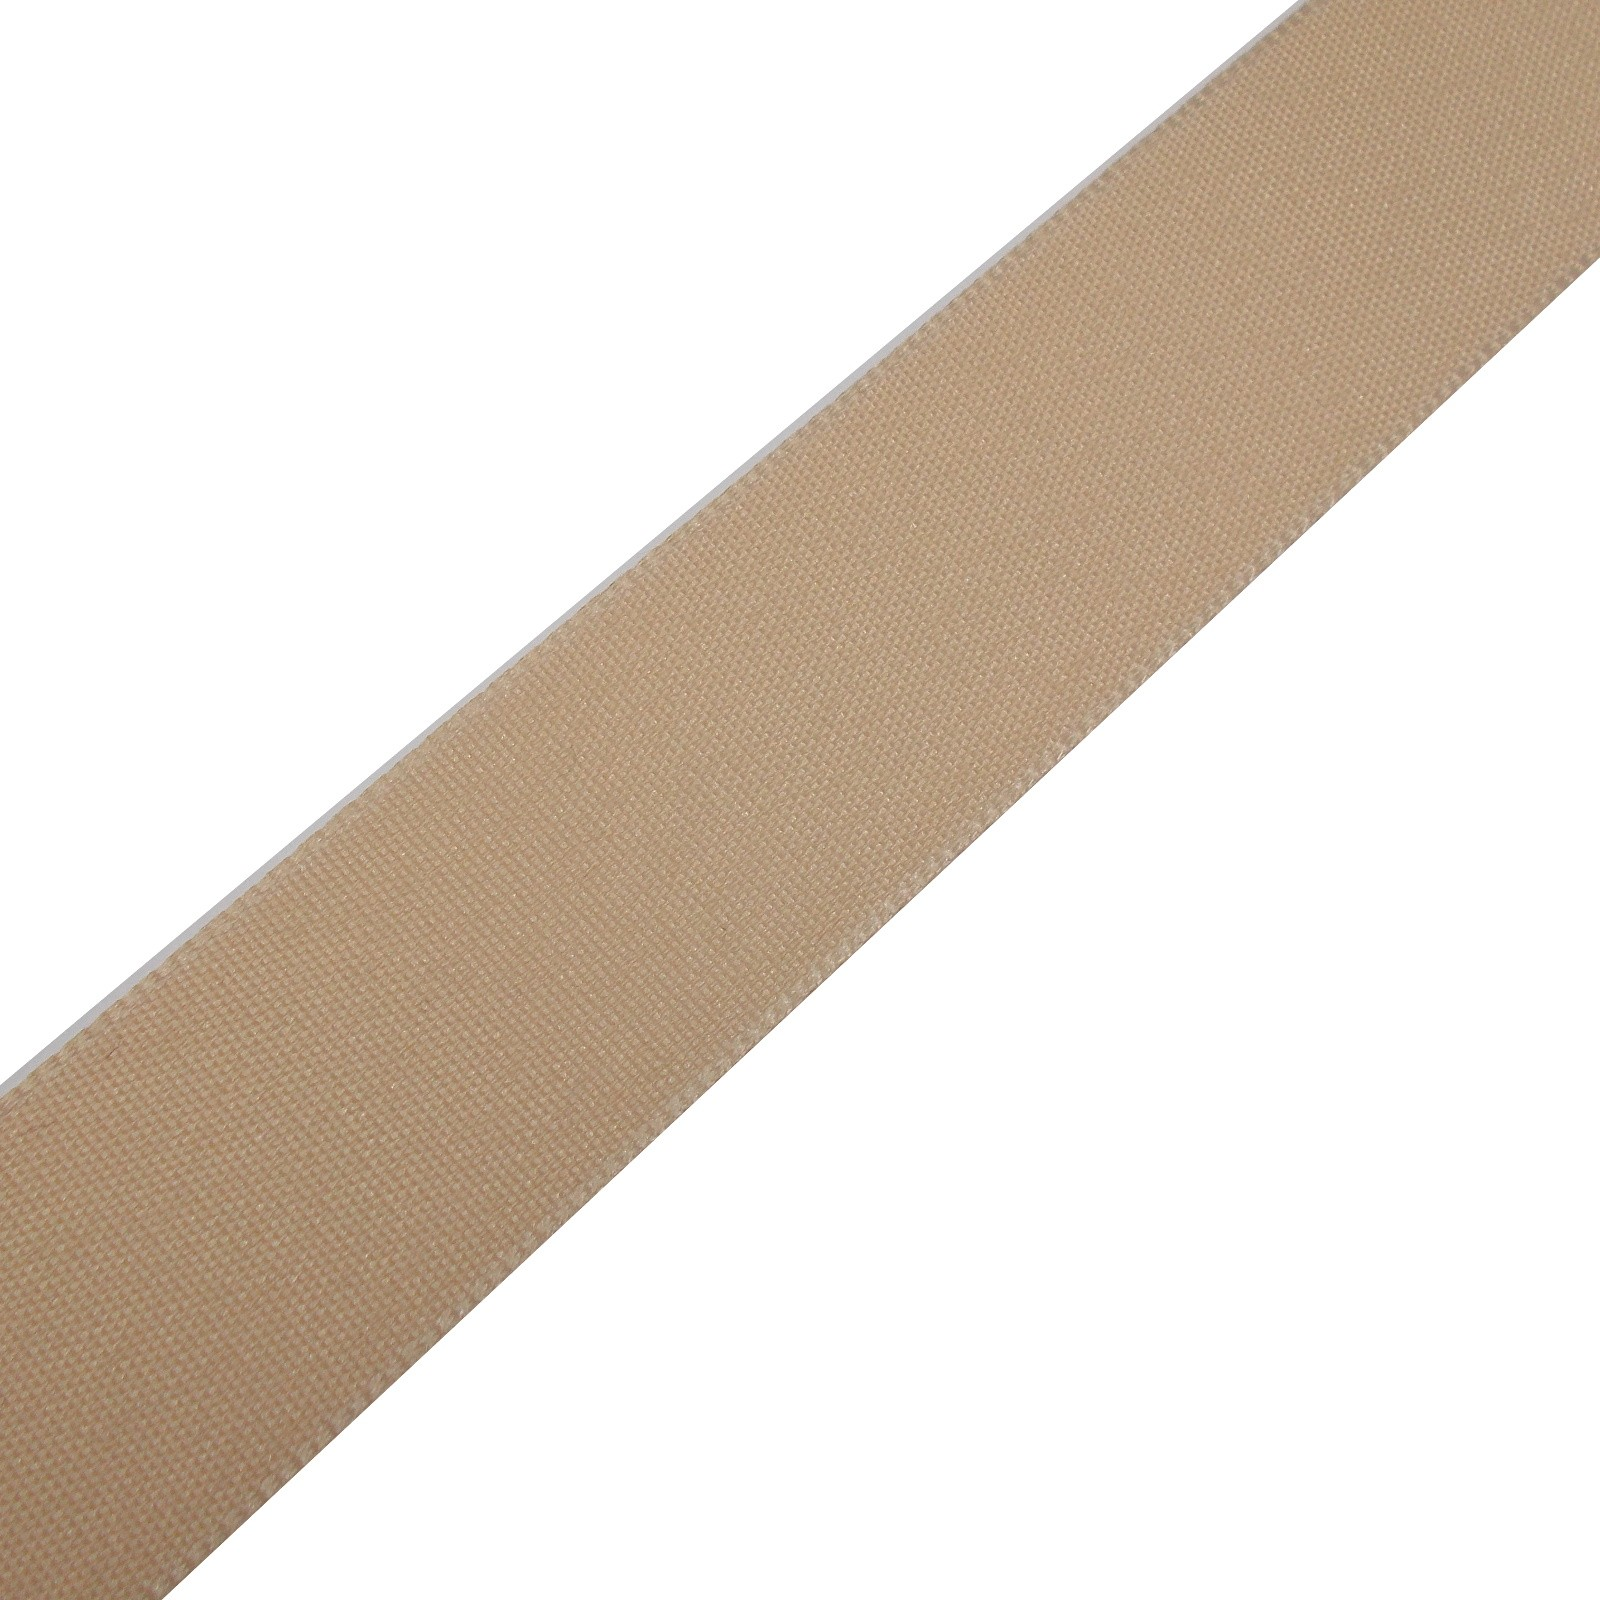 Berisfords Seam Binding Polyester Ribbon Tape 12mm wide Cream 2 metre length